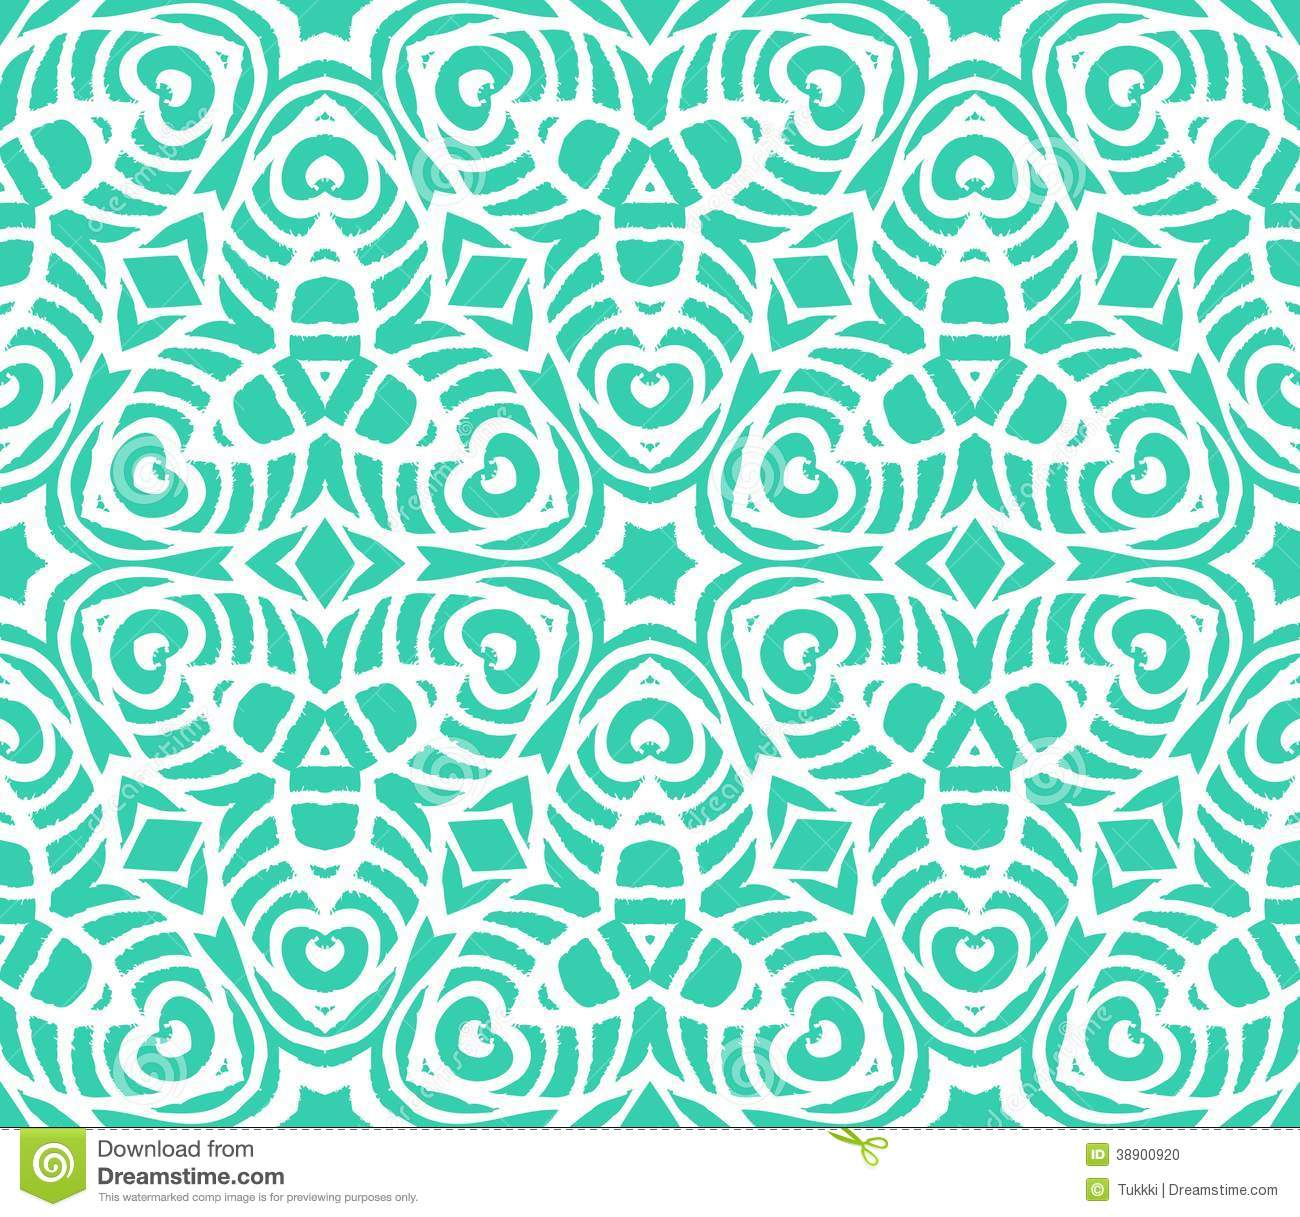 Lace art deco pattern with overlapping shapes stock vector for Arts et decoration abonnement